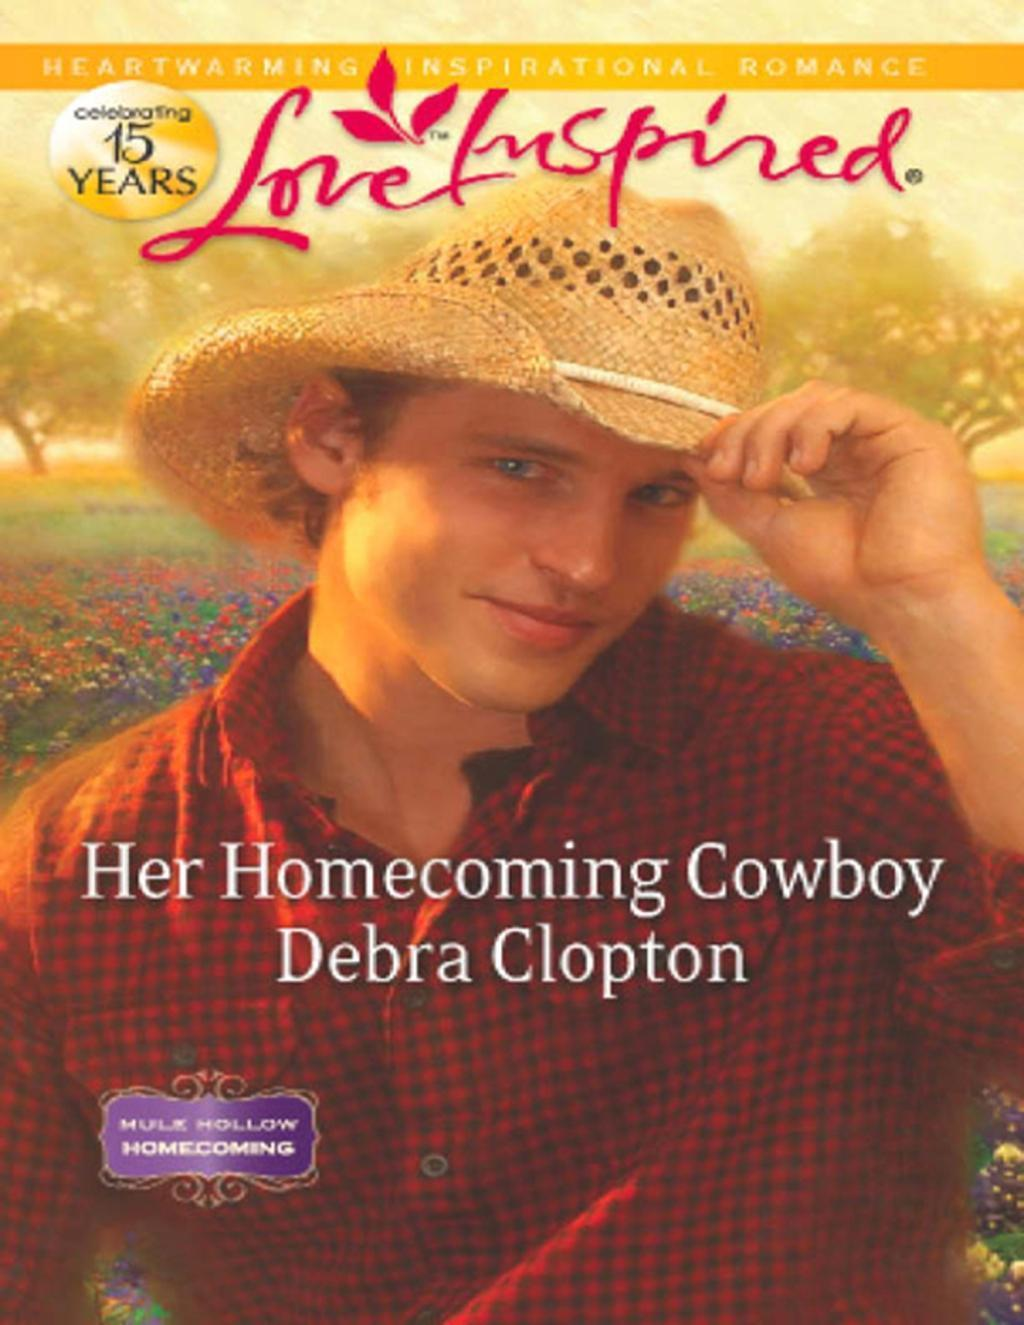 Her Homecoming Cowboy (Mills & Boon Love Inspired) (Mule Hollow Homecoming, Book 3)